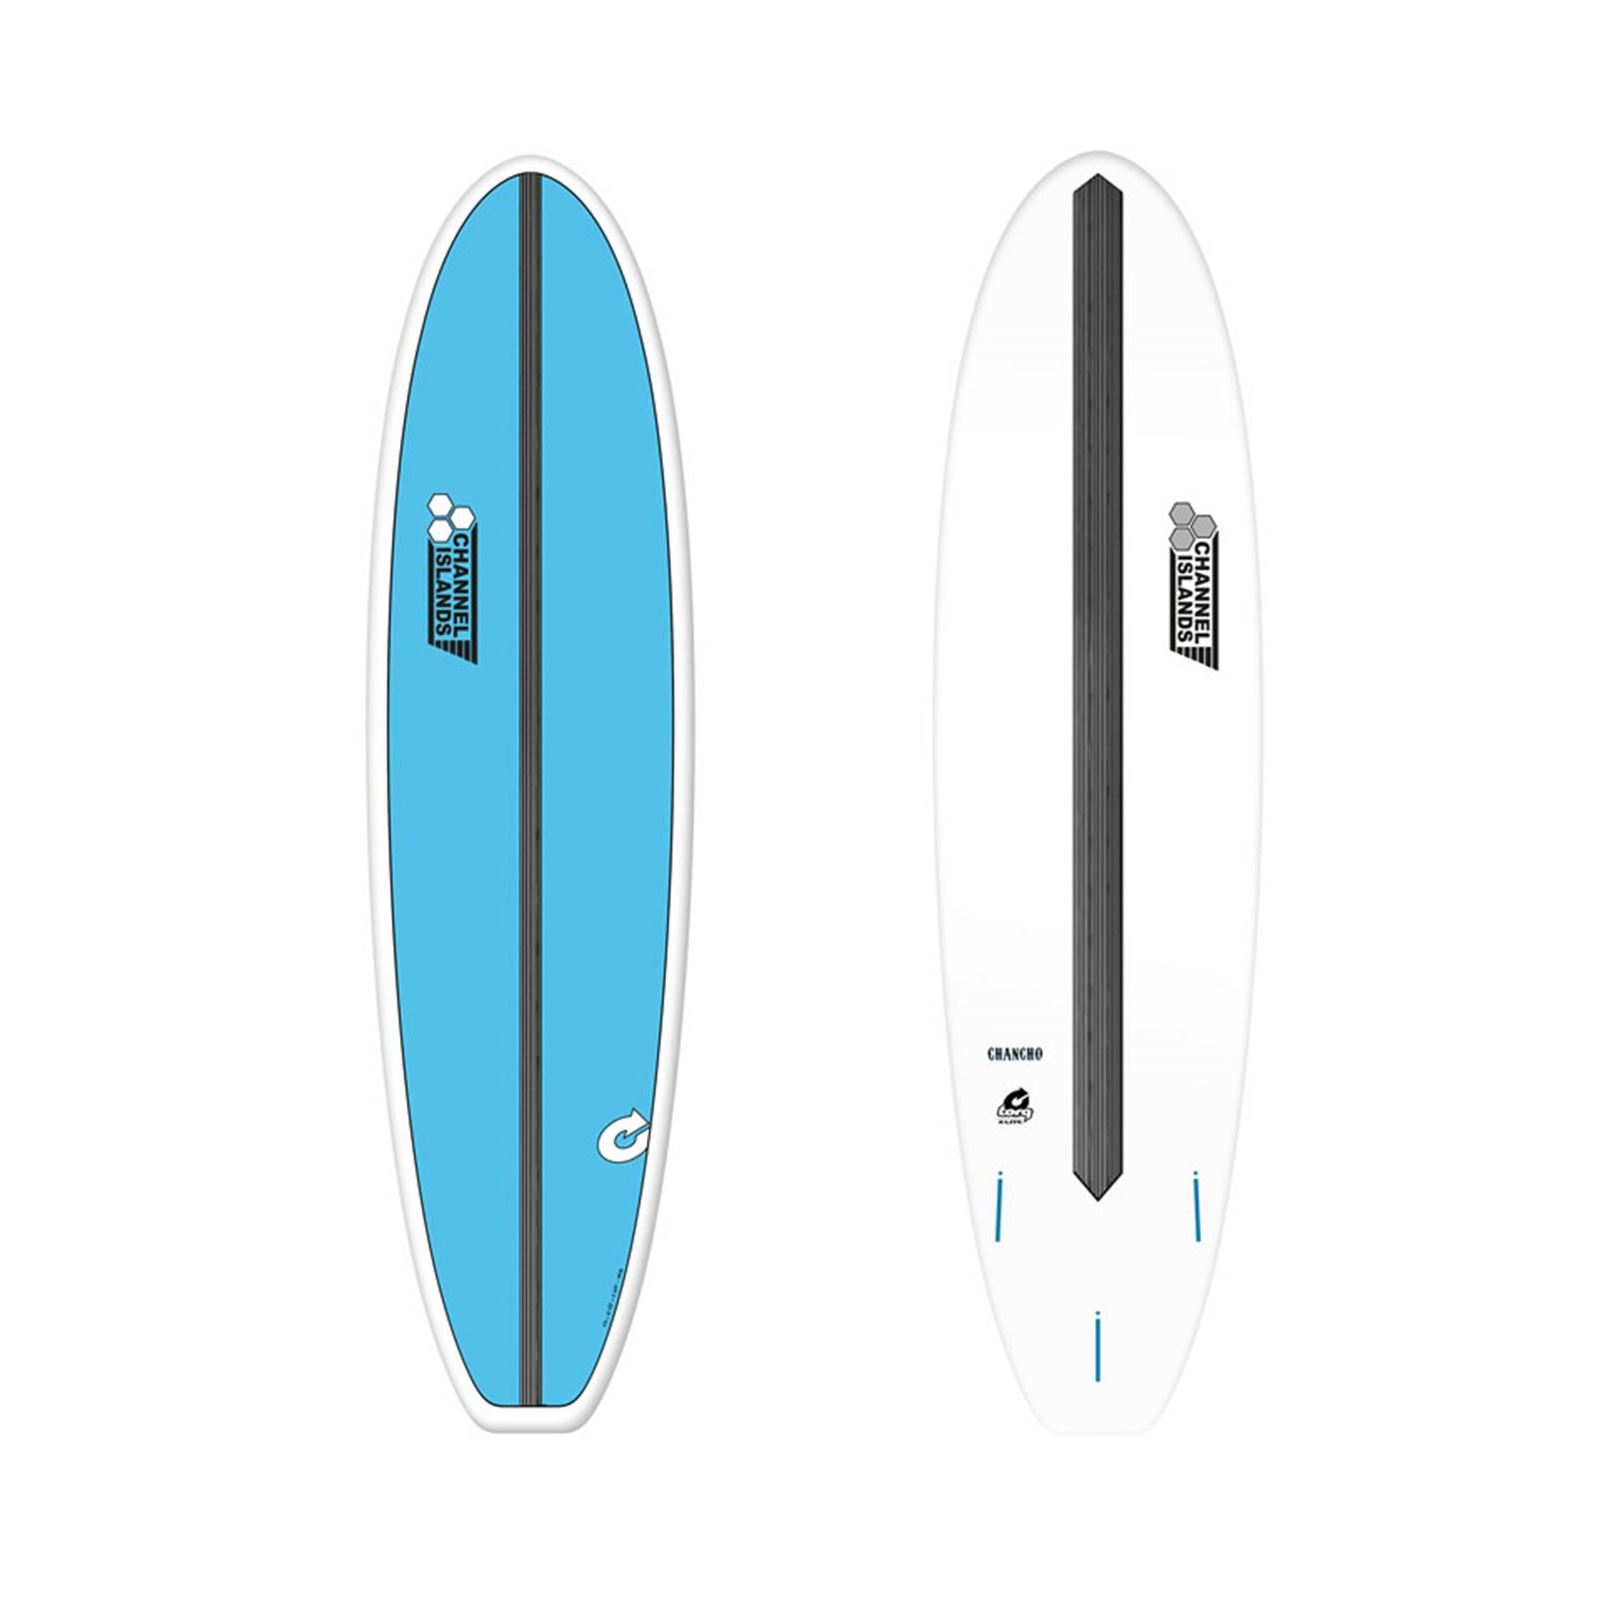 Surfboard CHANNEL ISLANDS X-lite Chancho 7.6 Blue